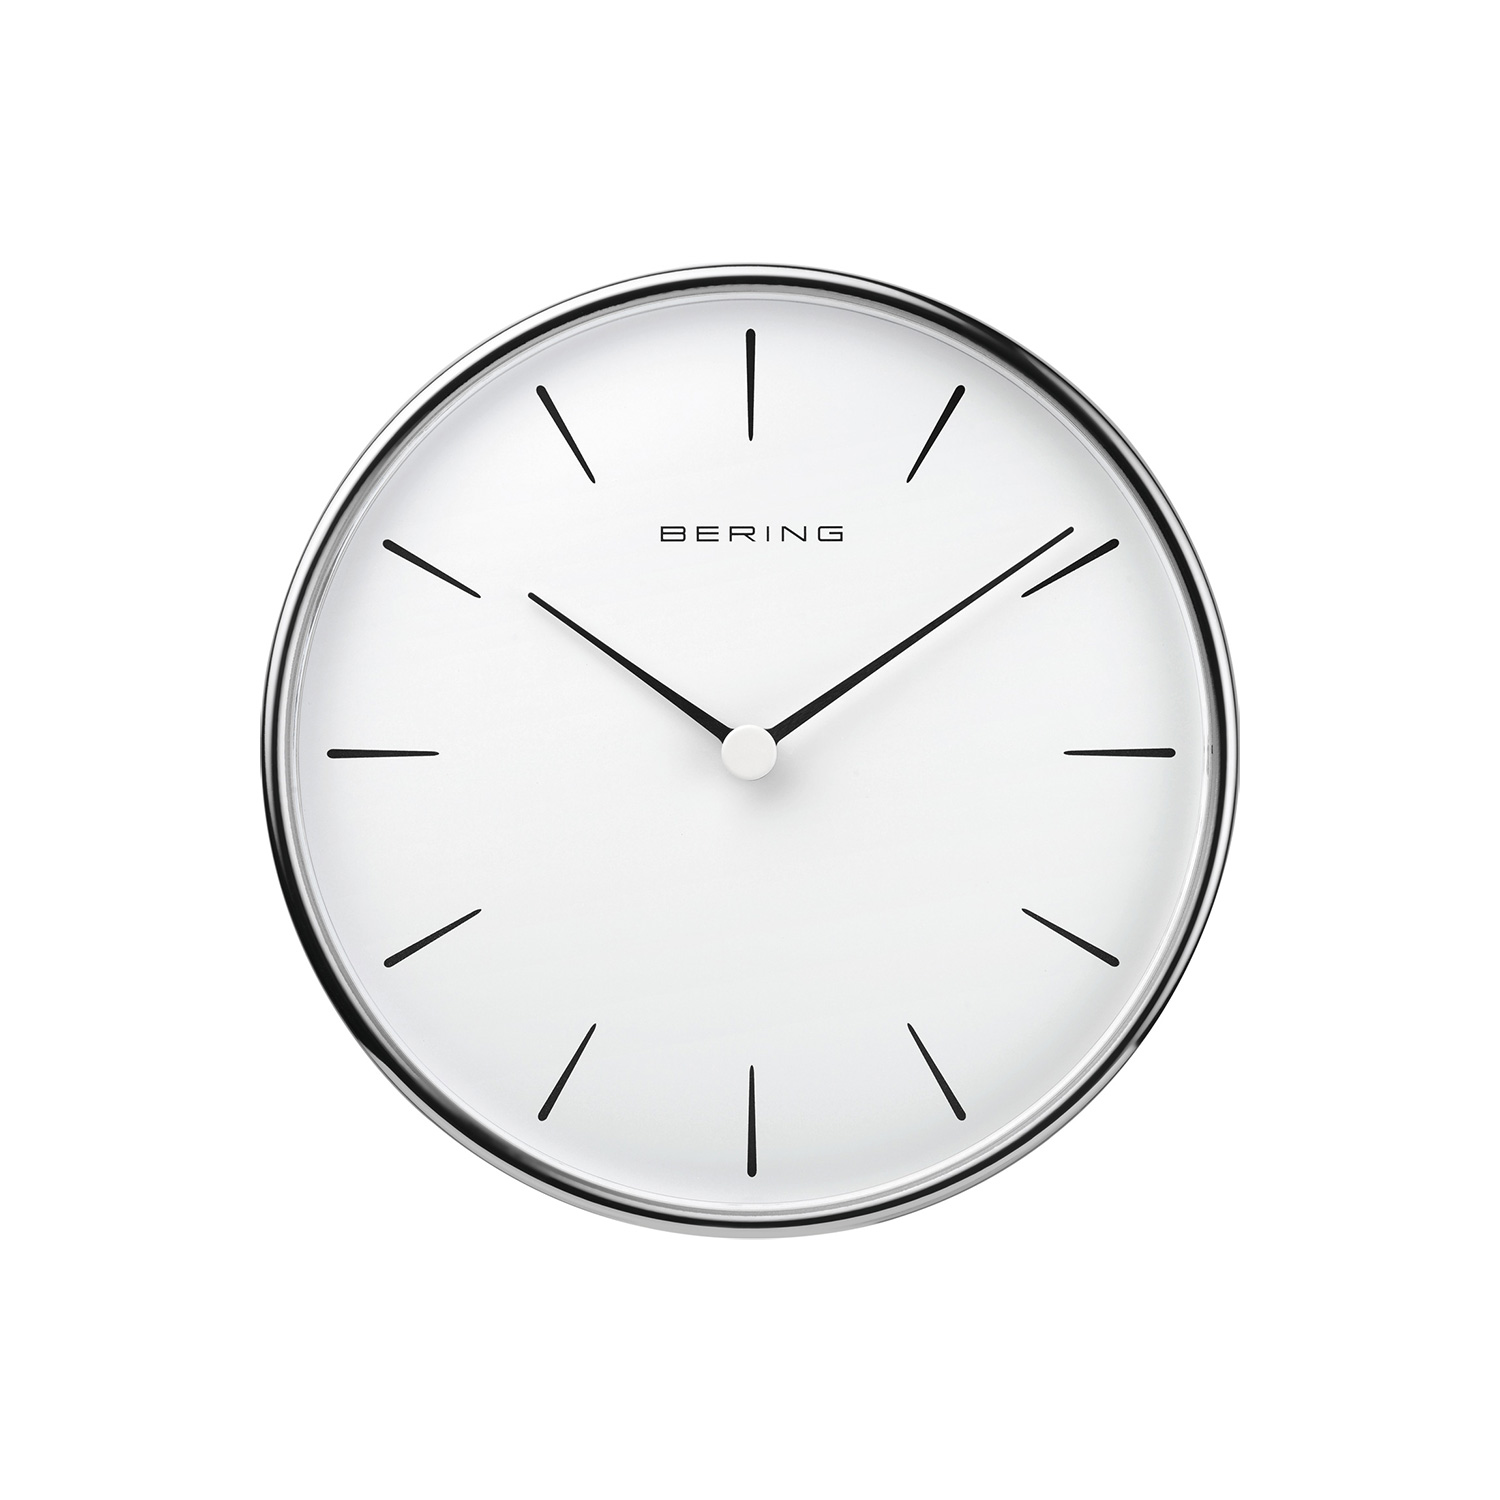 & Wall Clock Wall Clock Home Watches Bering Official Website Us Store